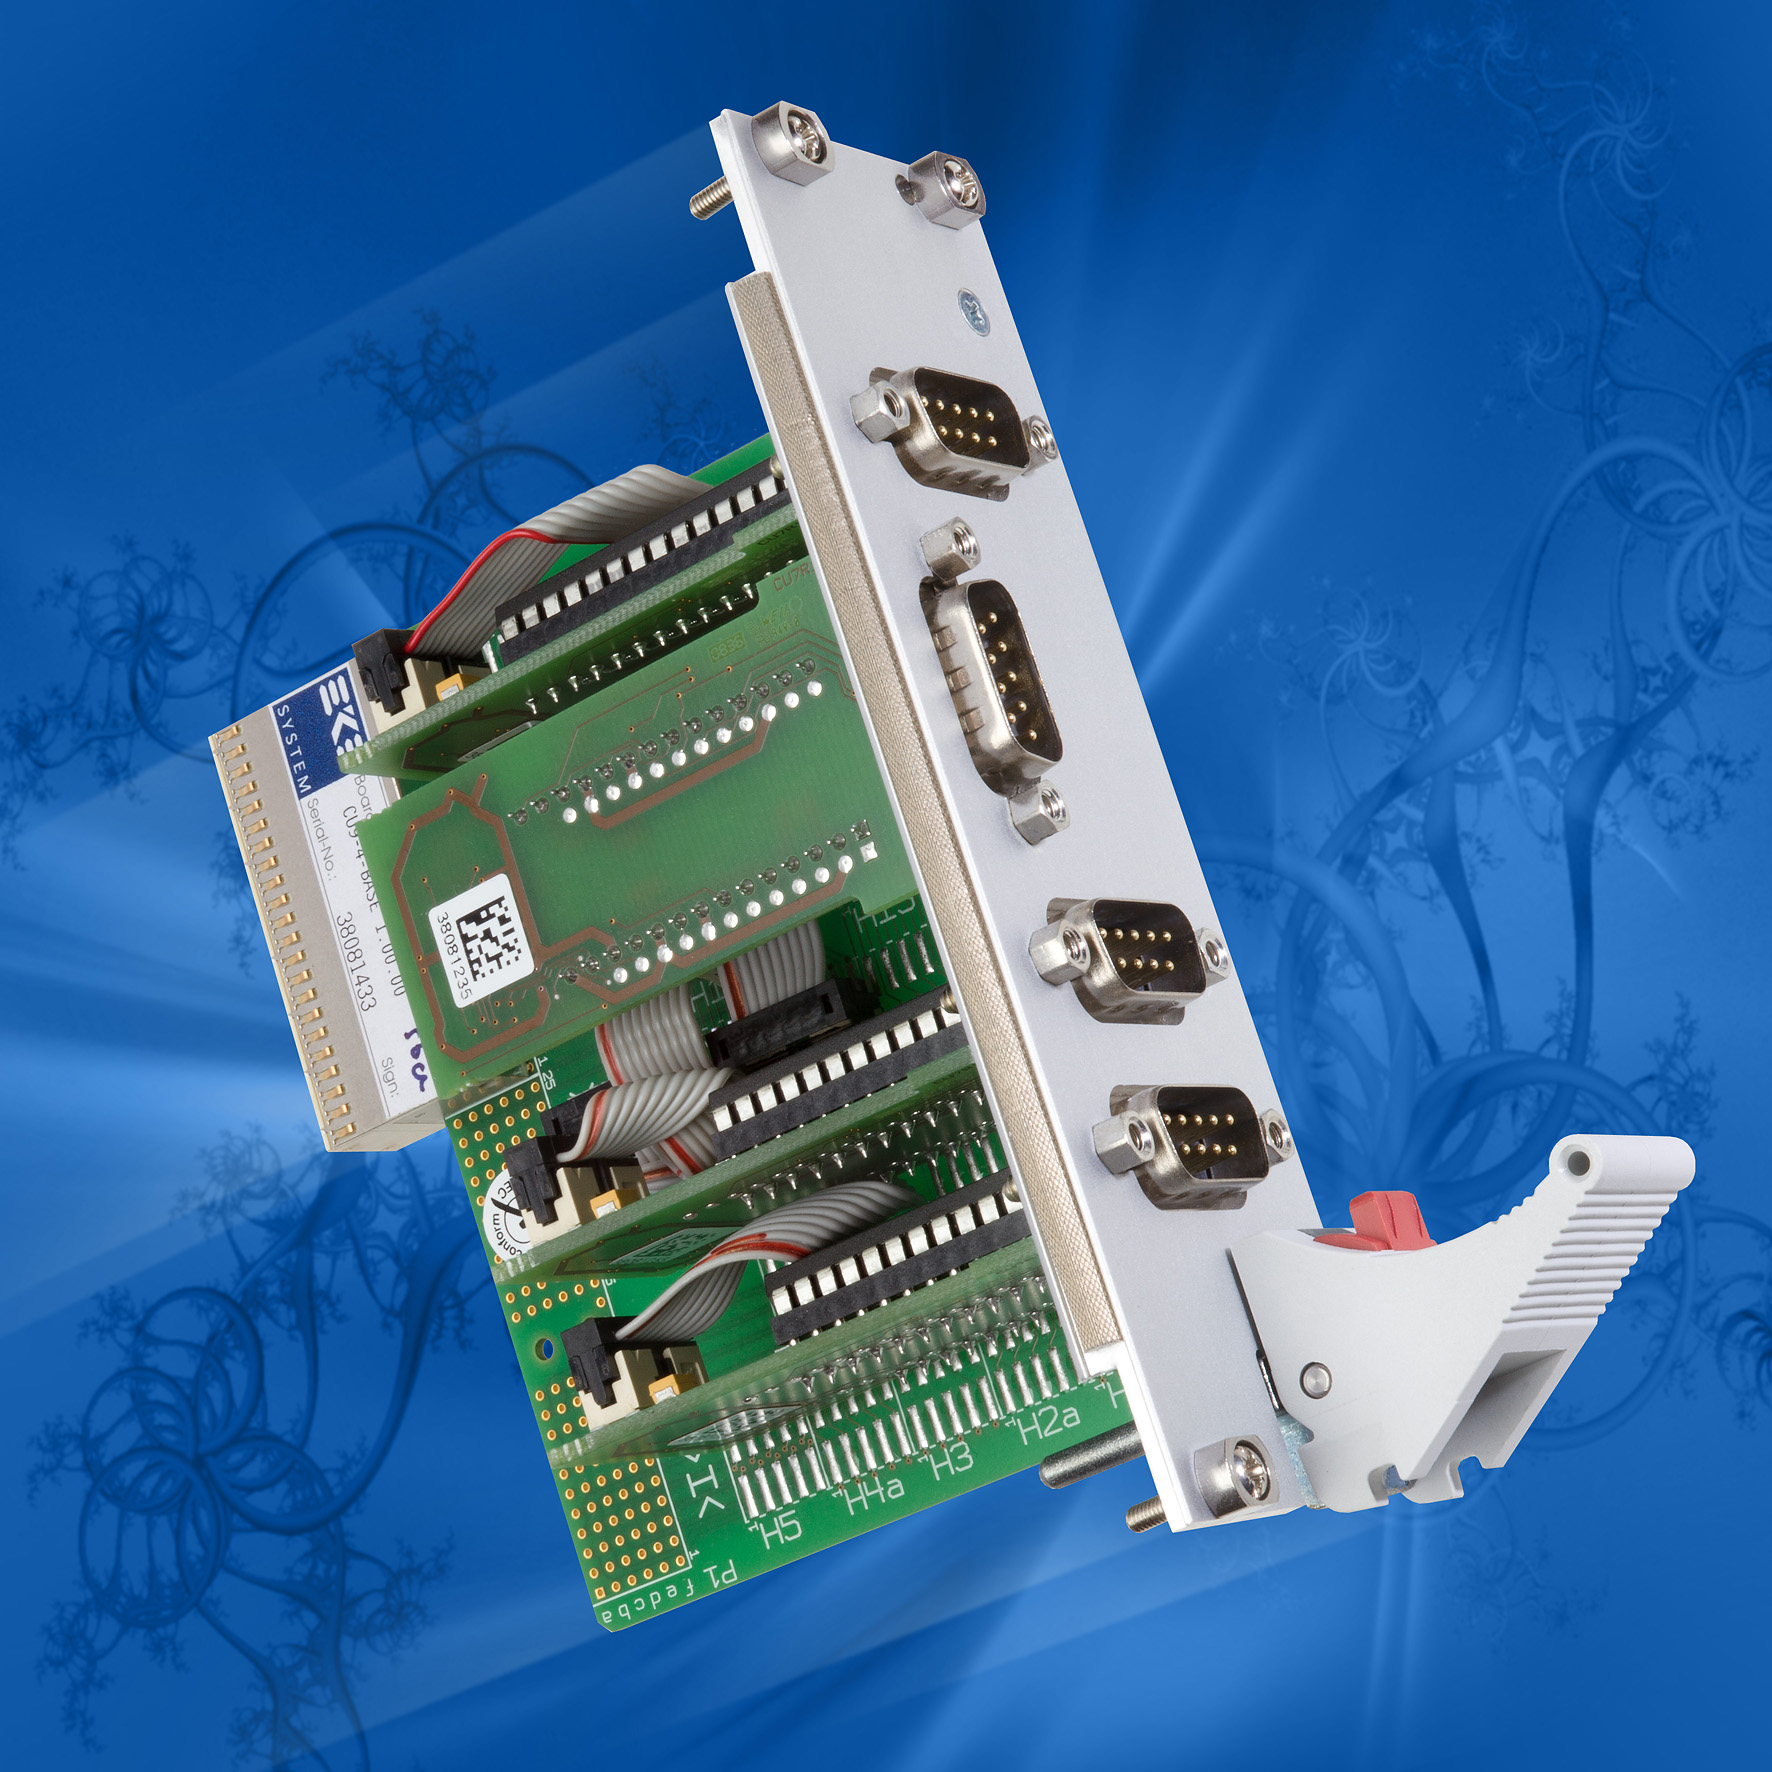 Ekf Compactpci Products Cu4 Soprano Quad Serial Interface English Ieee 1284 A Parallel Port Connector Pinout Schematic Diagram Rear I O Assembly Cu9 4 Base